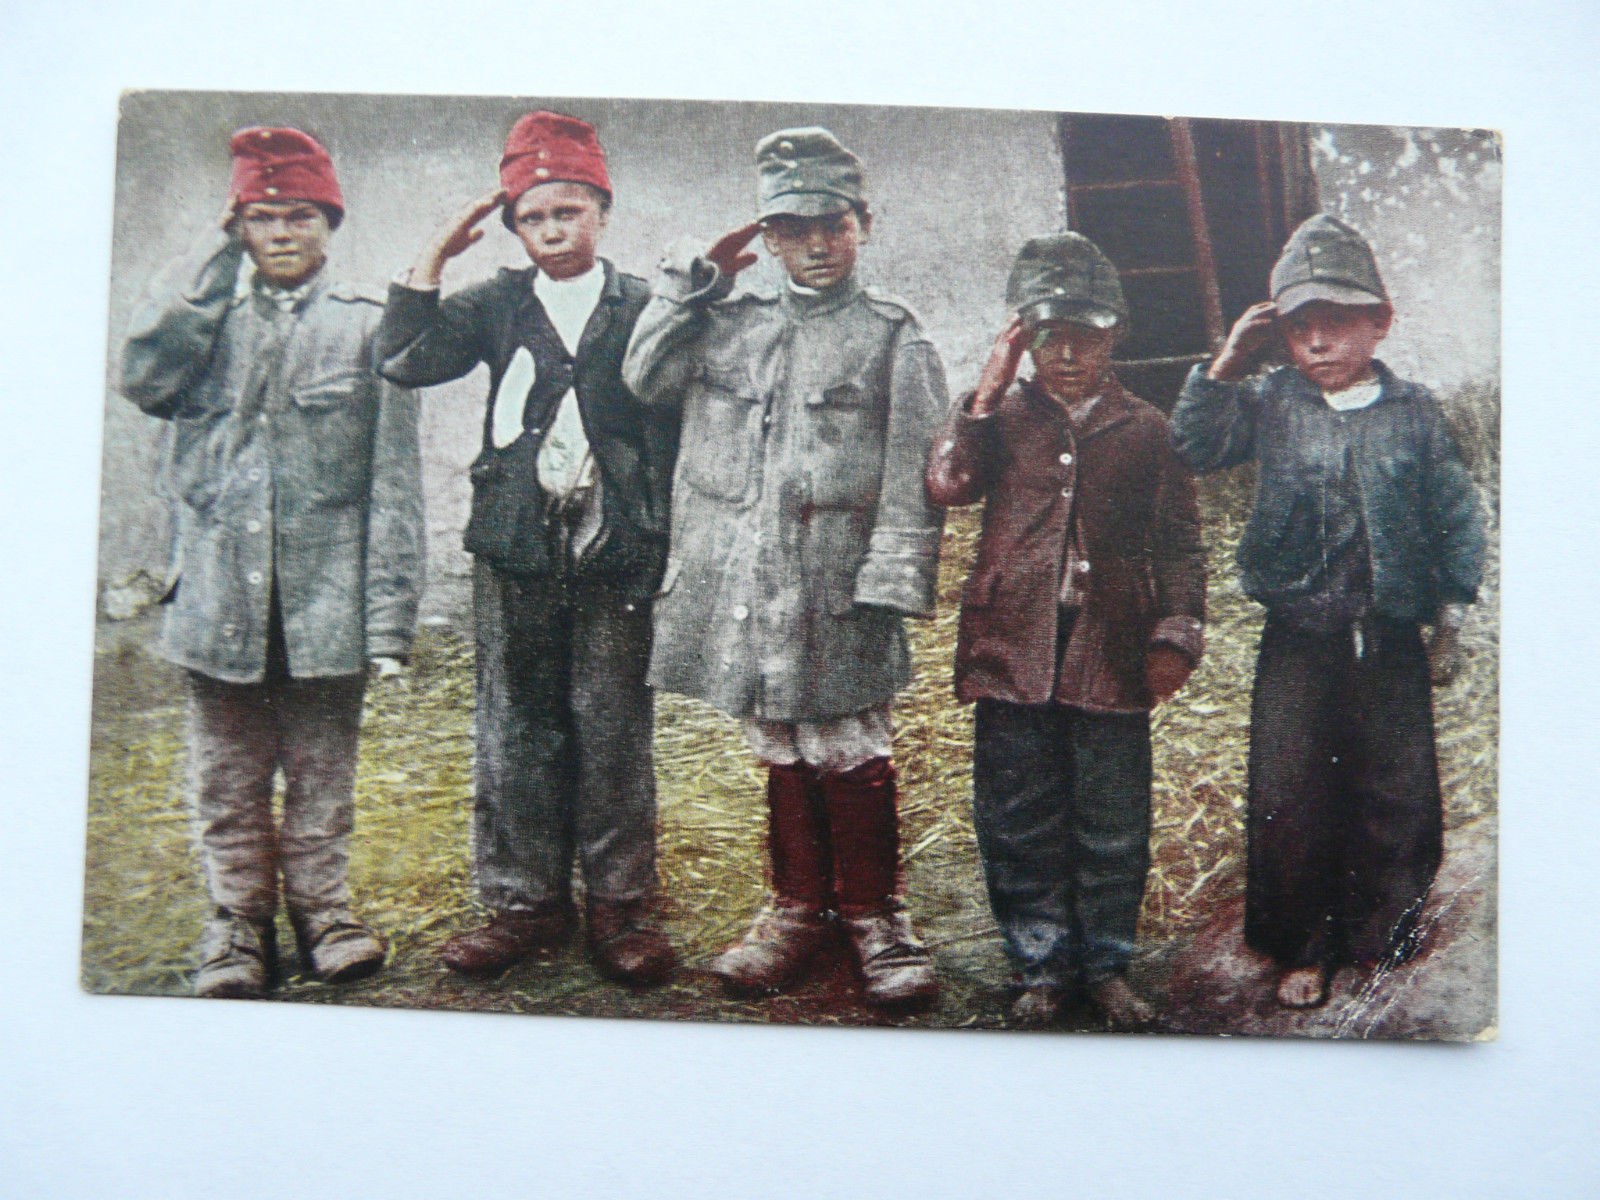 Serbian-Boys-playing-soldiers-in-Austrian-Uniforms-WW1-German.jpg